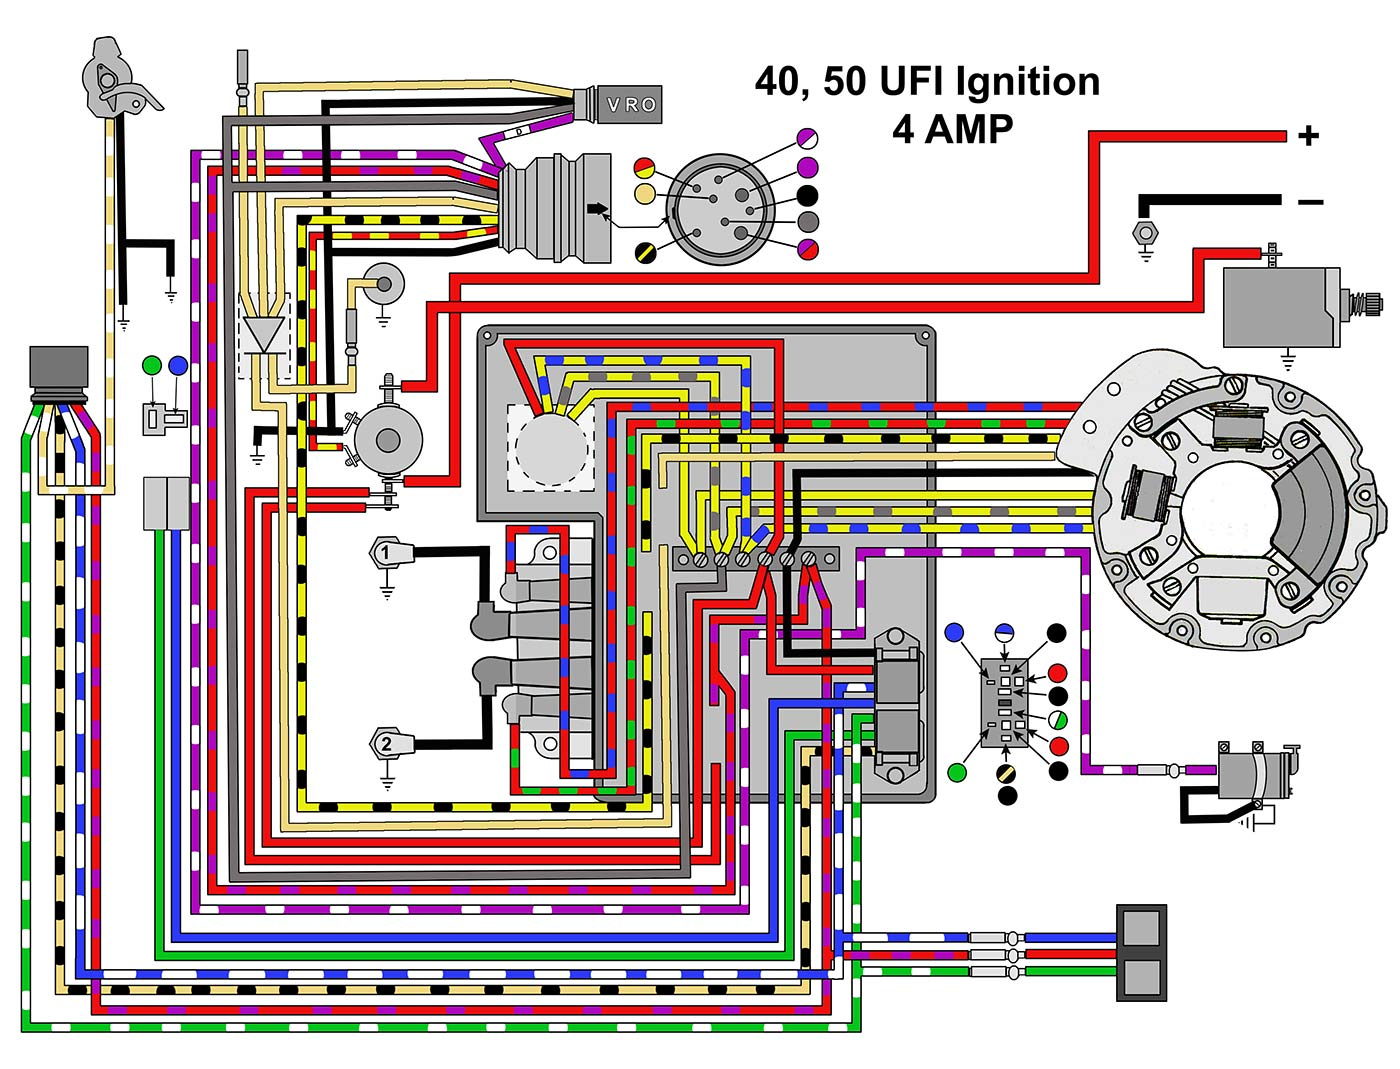 mastertech marine evinrude johnson outboard wiring diagrams Mazda Wiring Schematics 40 50 hp with ufi ignition